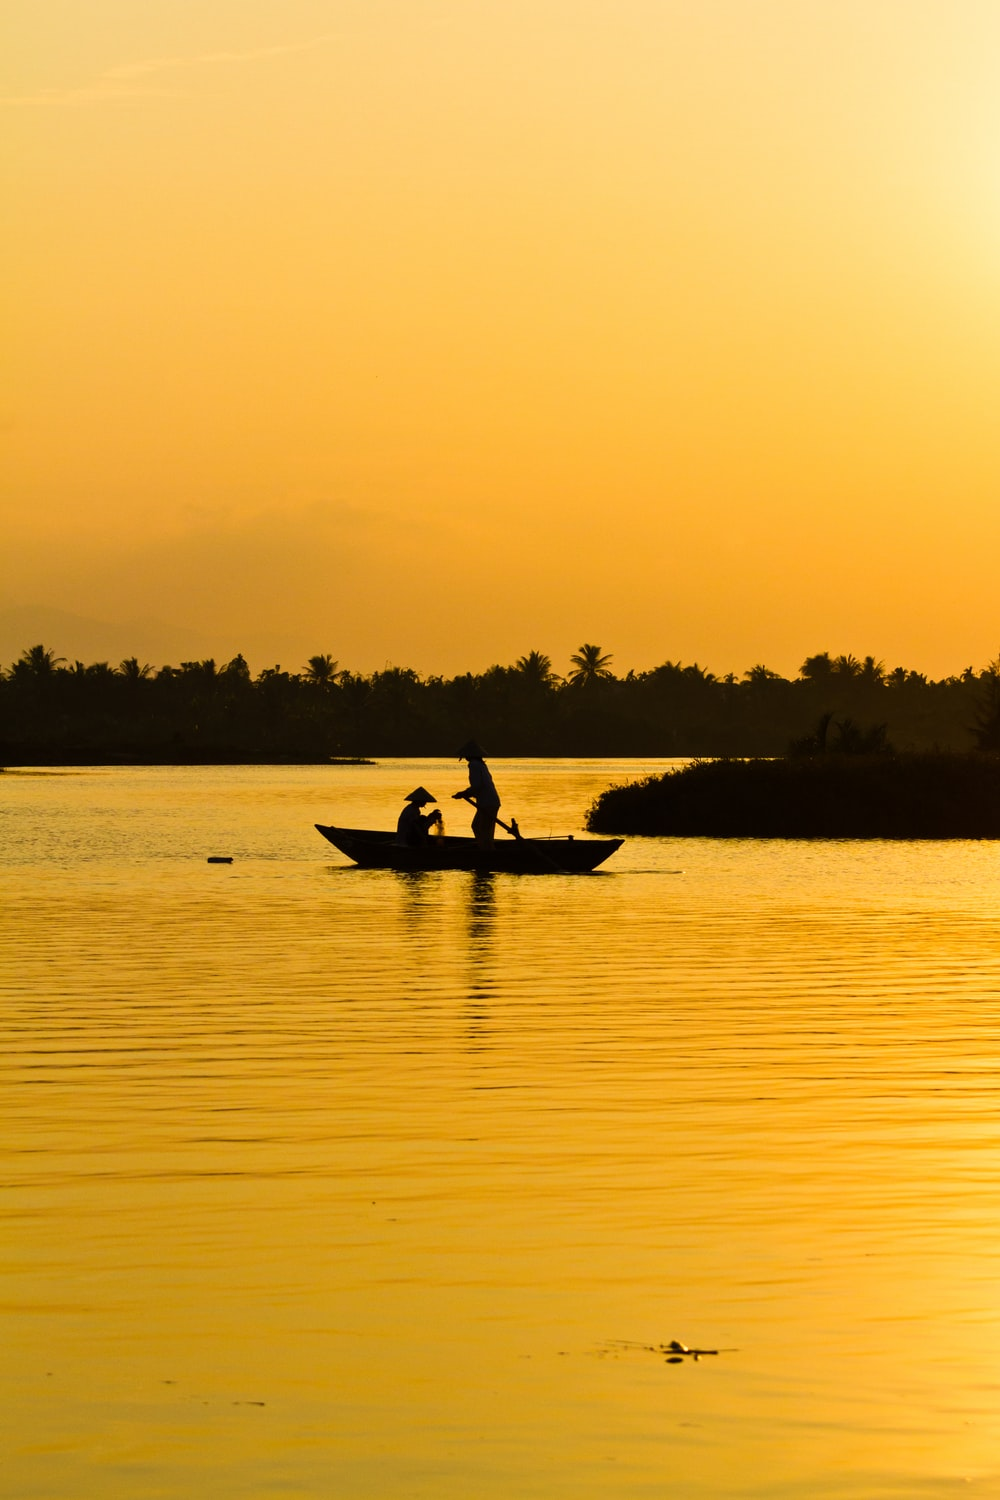 photography of silhouette of two person's in sitting and standing in boat